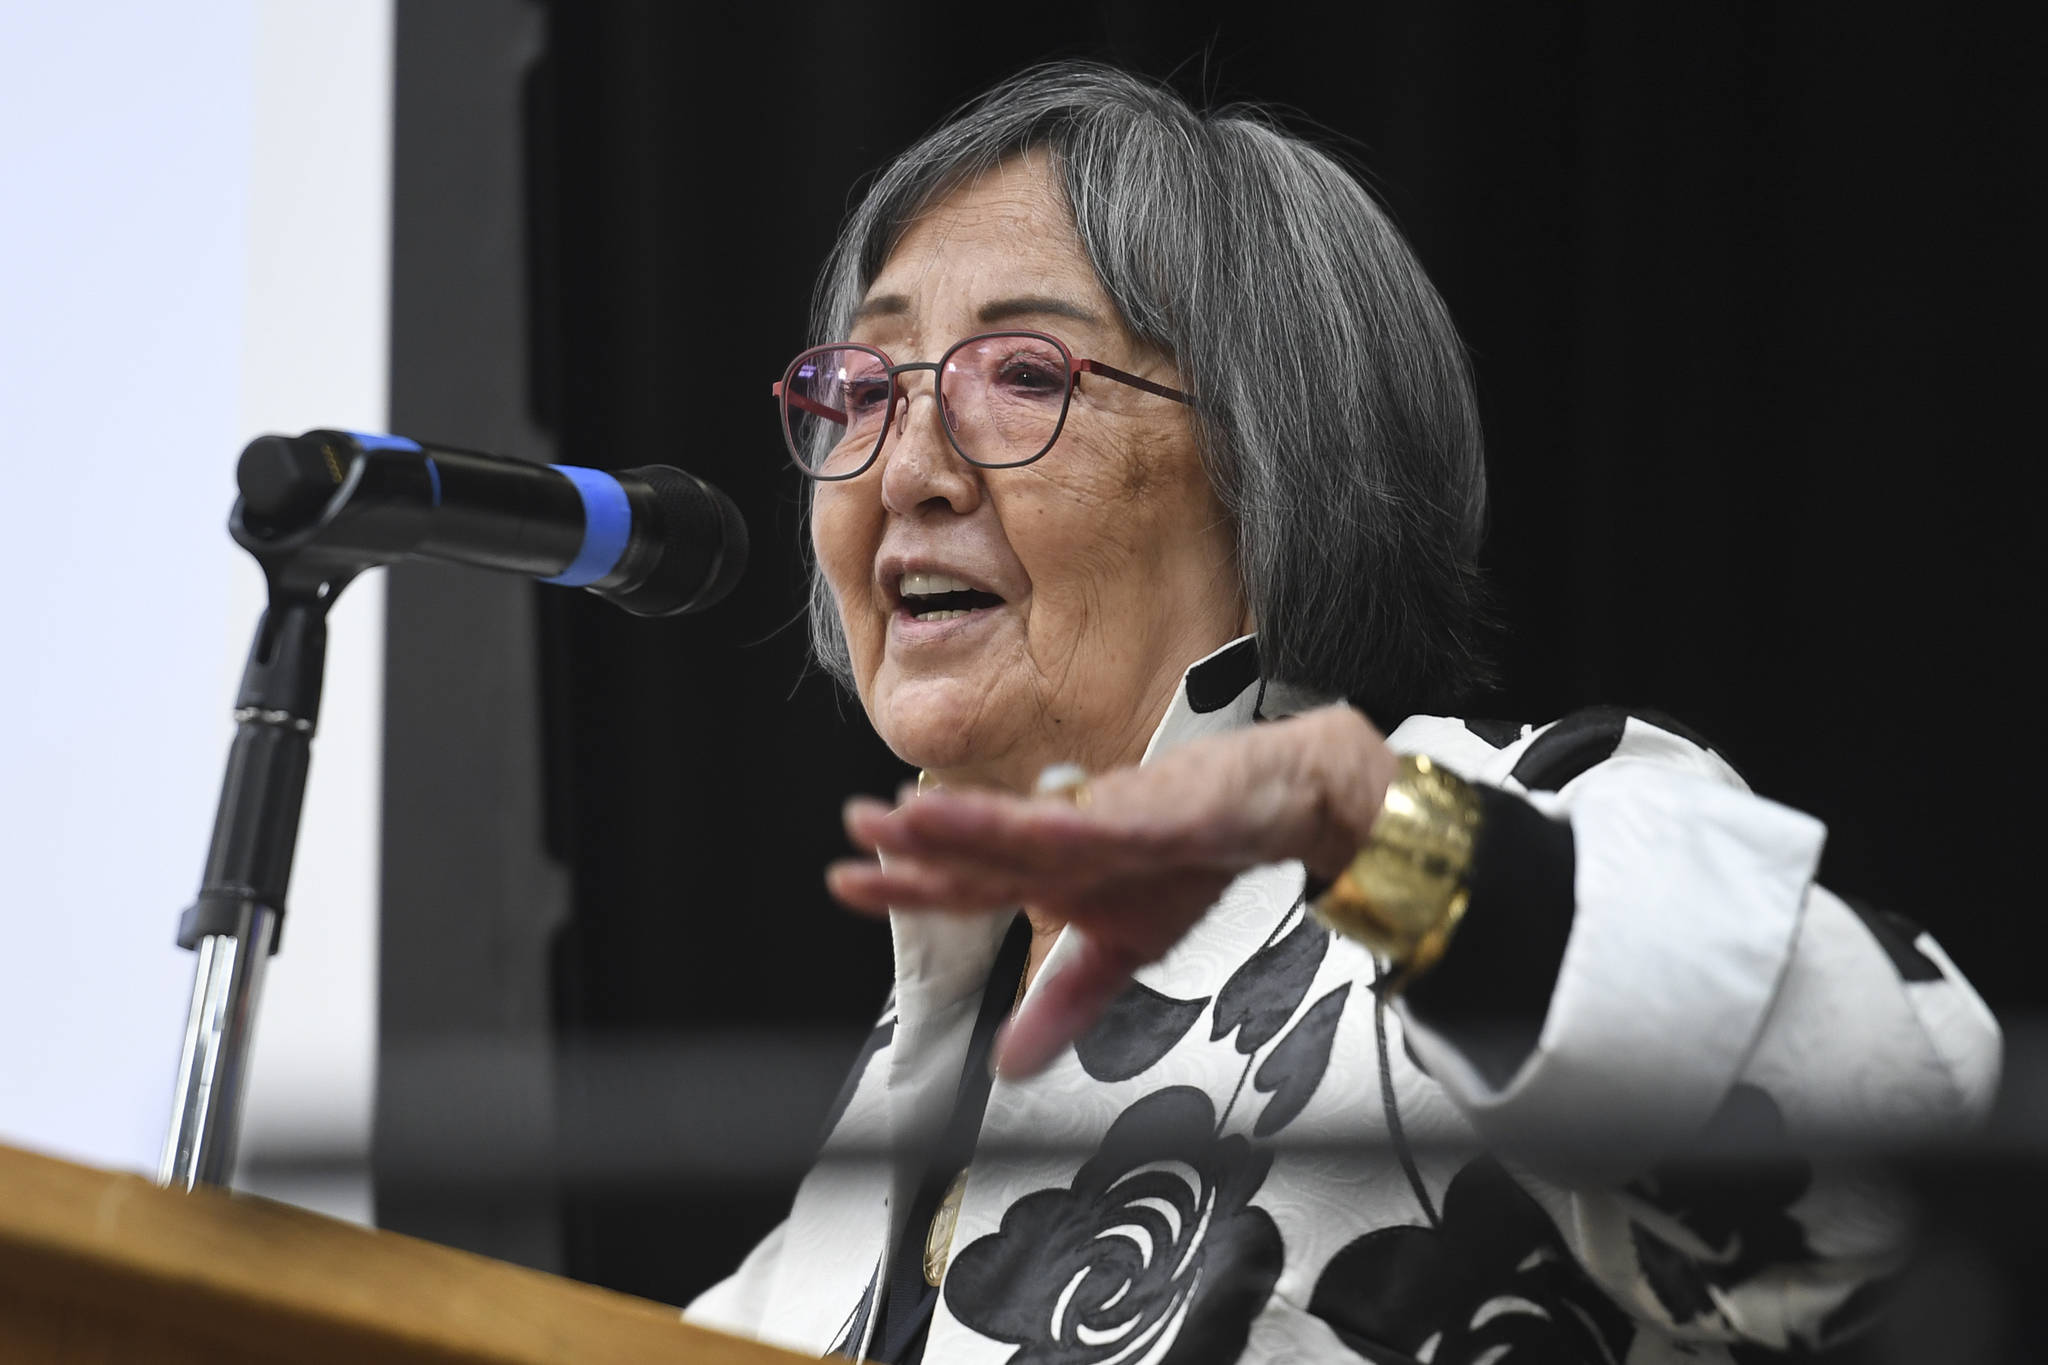 Rosita Worl, president of Sealaska Heritage Institute, gives a presentation at the Sharing Our Knowledge event in September 2019. (Michael Penn | Juneau Empire File)